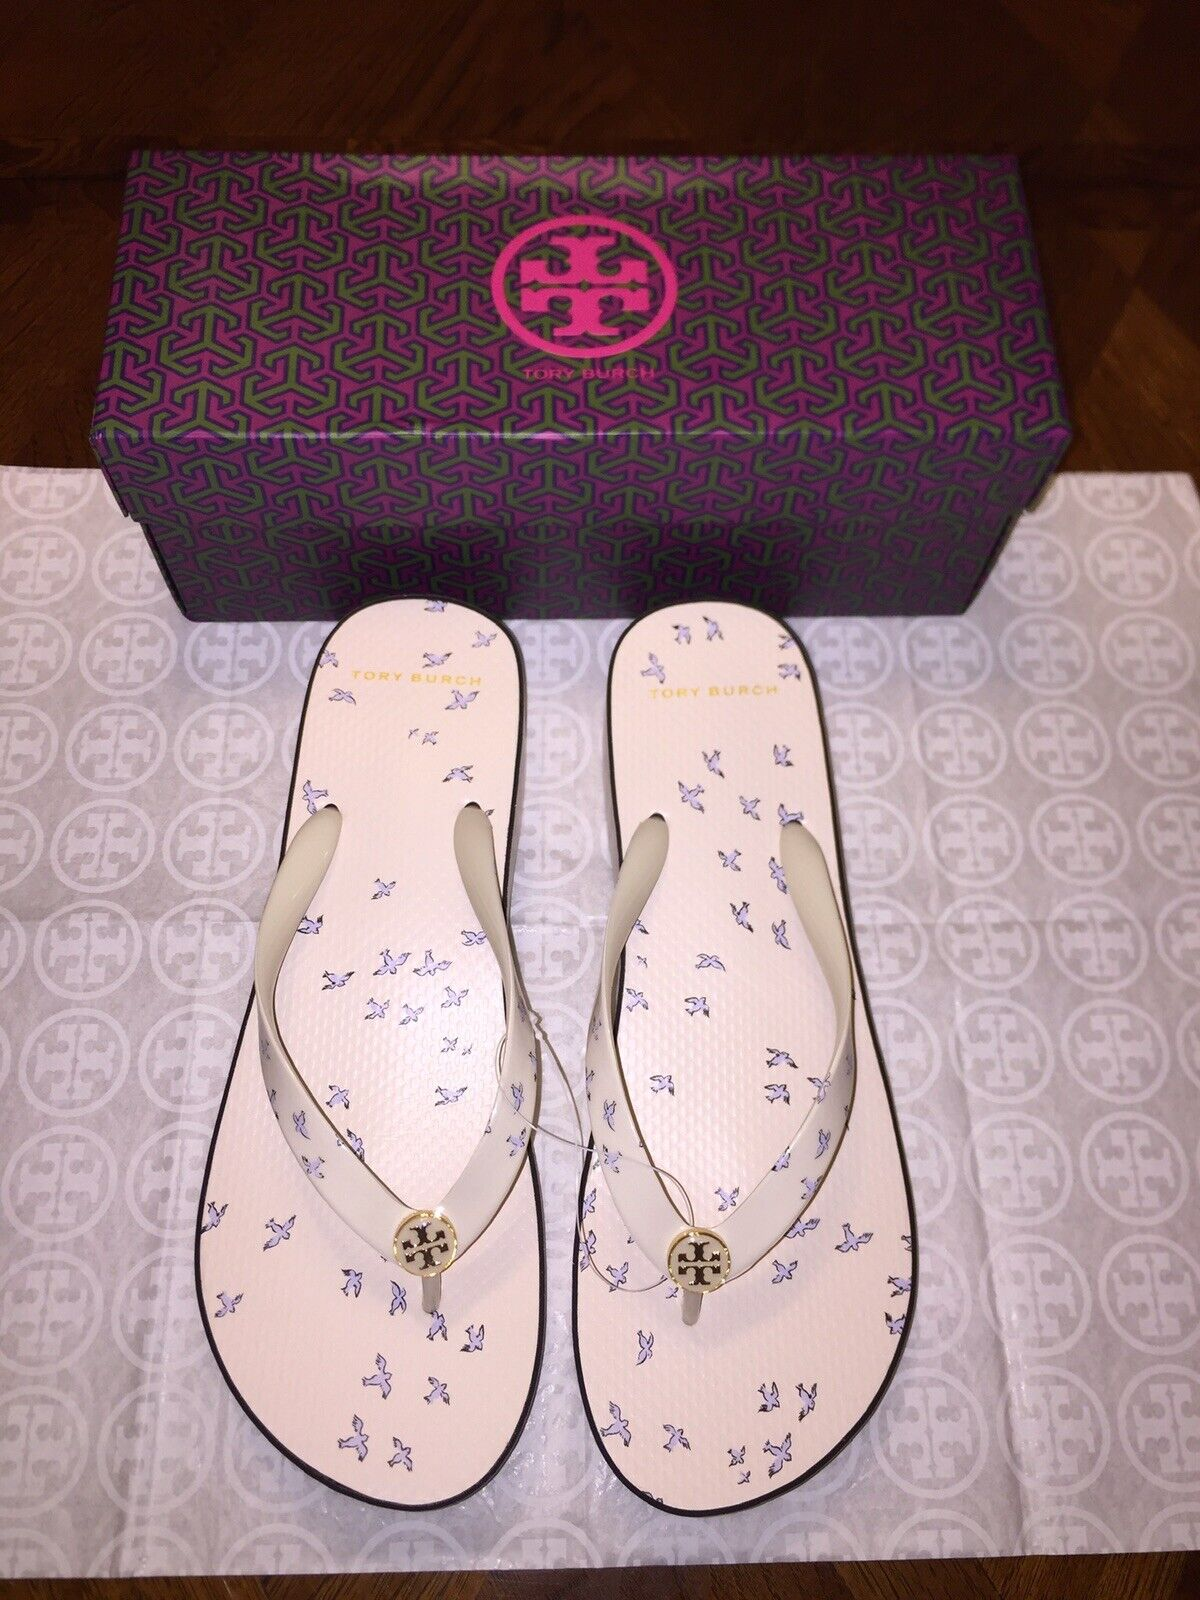 NIB Tory Burch Burch Burch Printed Cut -Out WEDGE FLIP - FLOP i Ivory Early Bird Storlek 11  nya exklusiva high-end